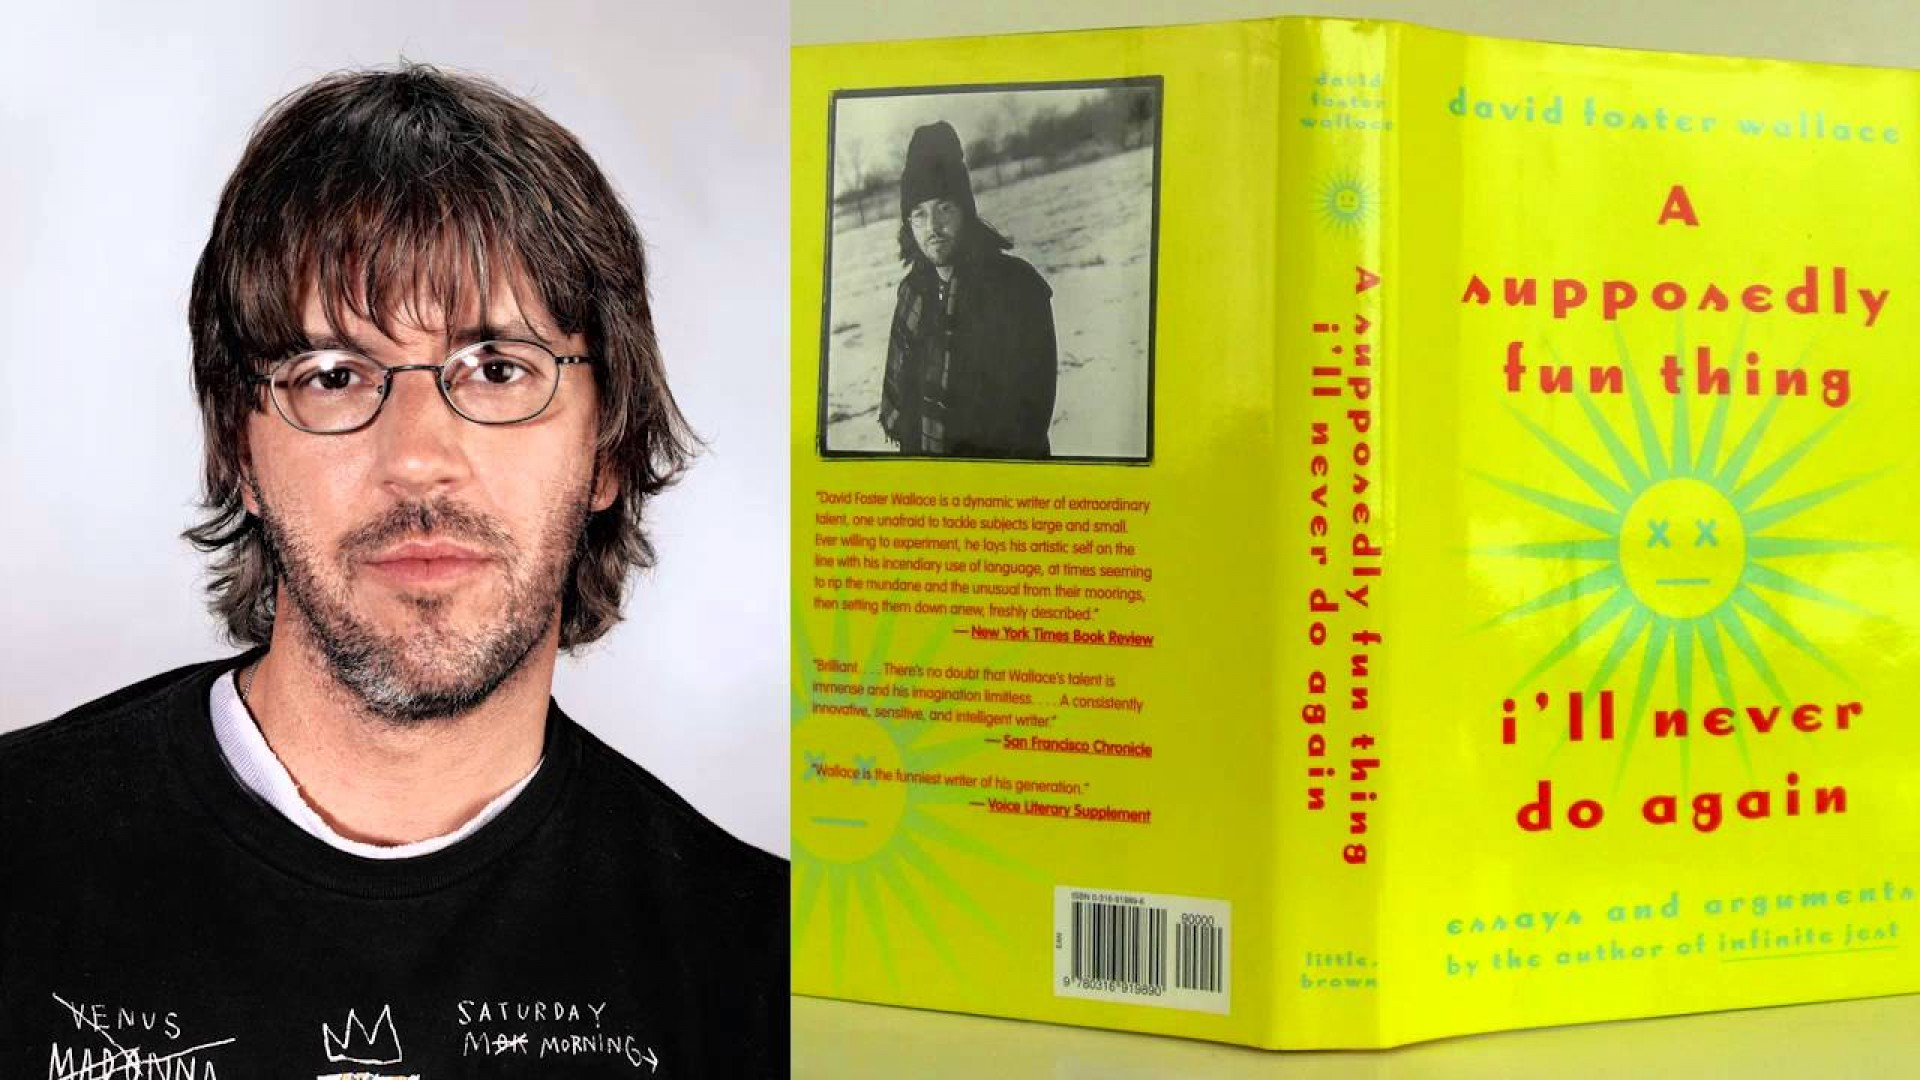 007 David Foster Wallace Essay Maxresdefault Singular On Television Consider Critical Essays This Is Water 1920